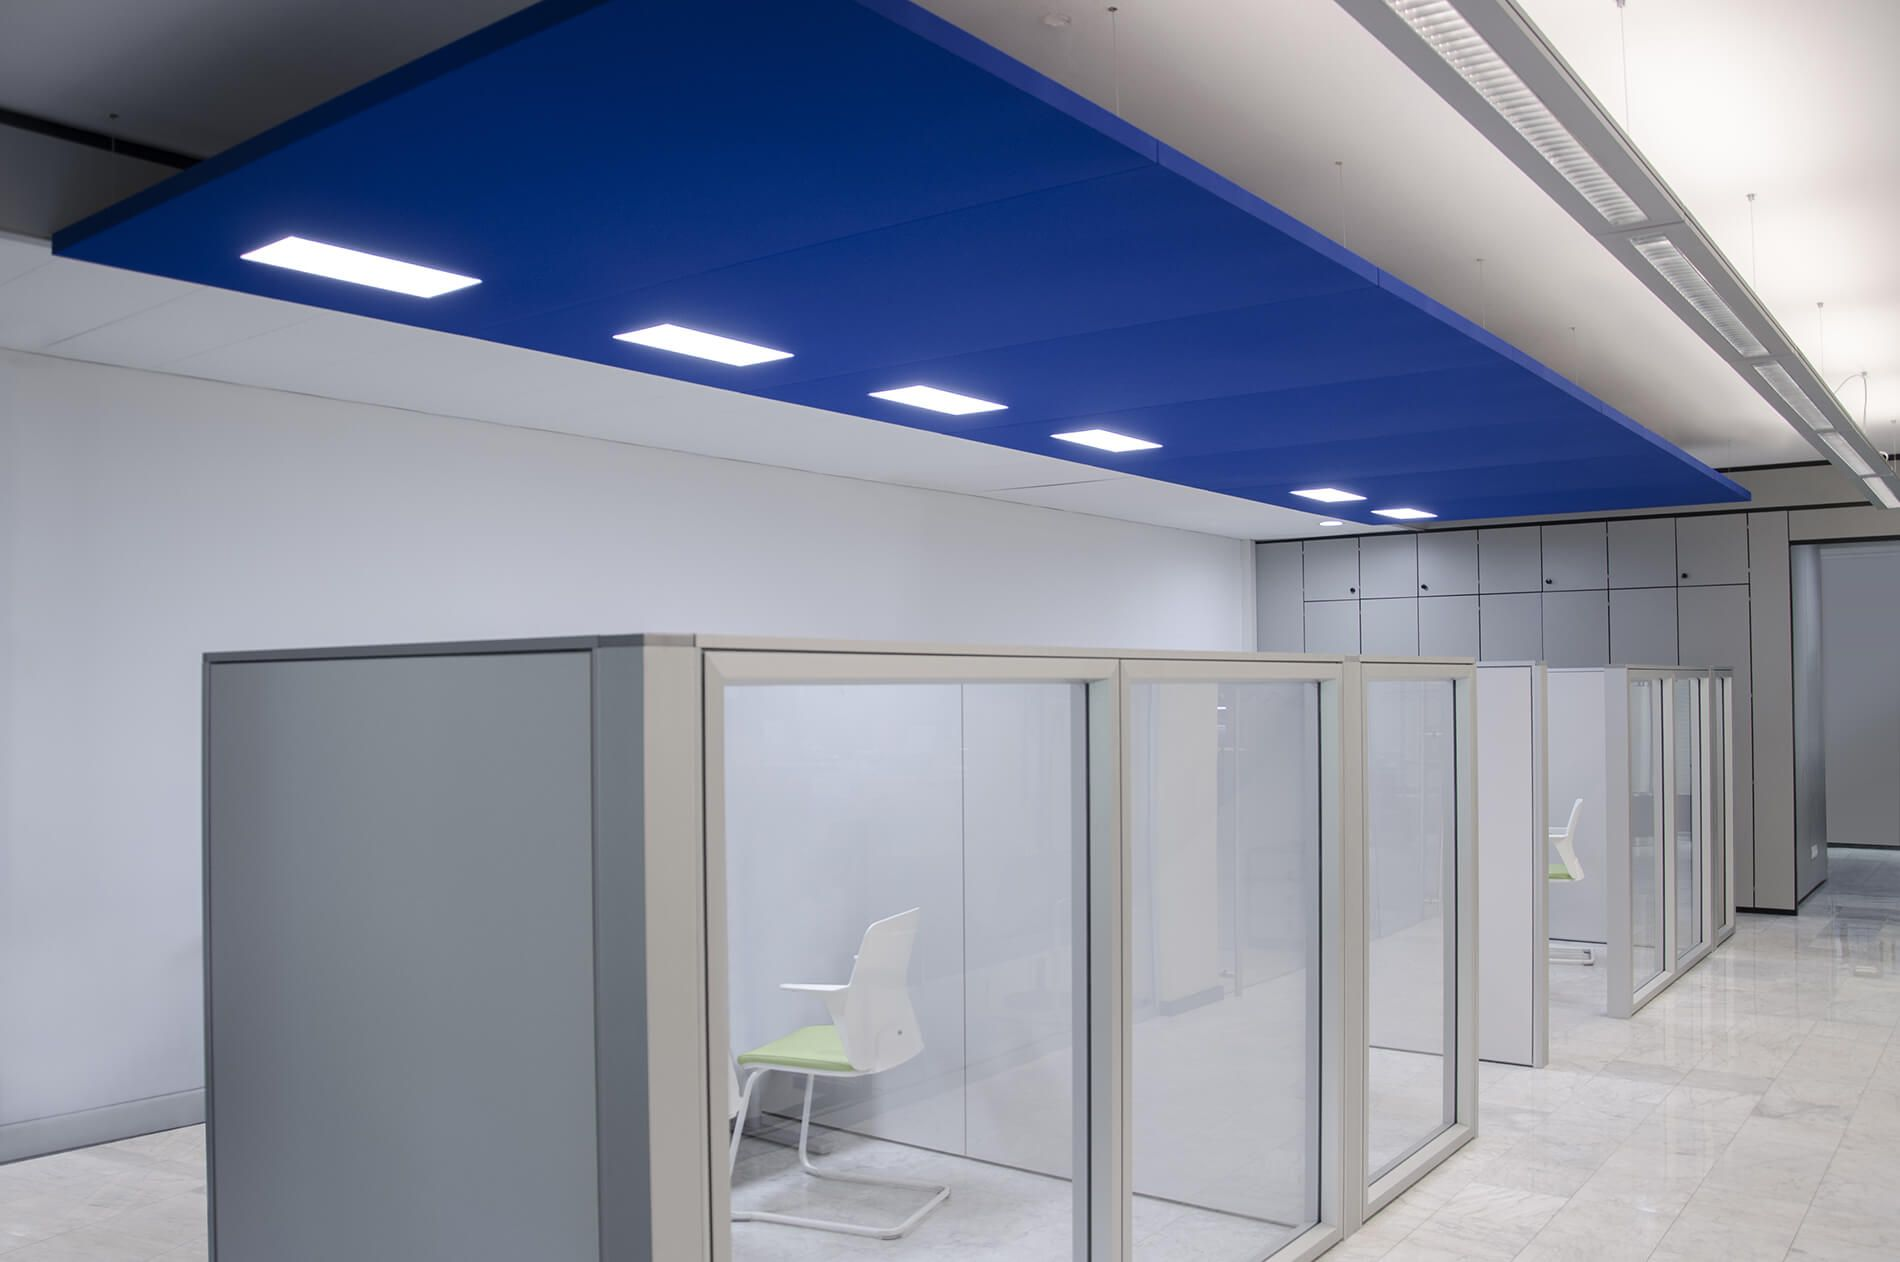 Office Acoustic Comfort, Nuvola Sound Absorbing Panels With Led Light